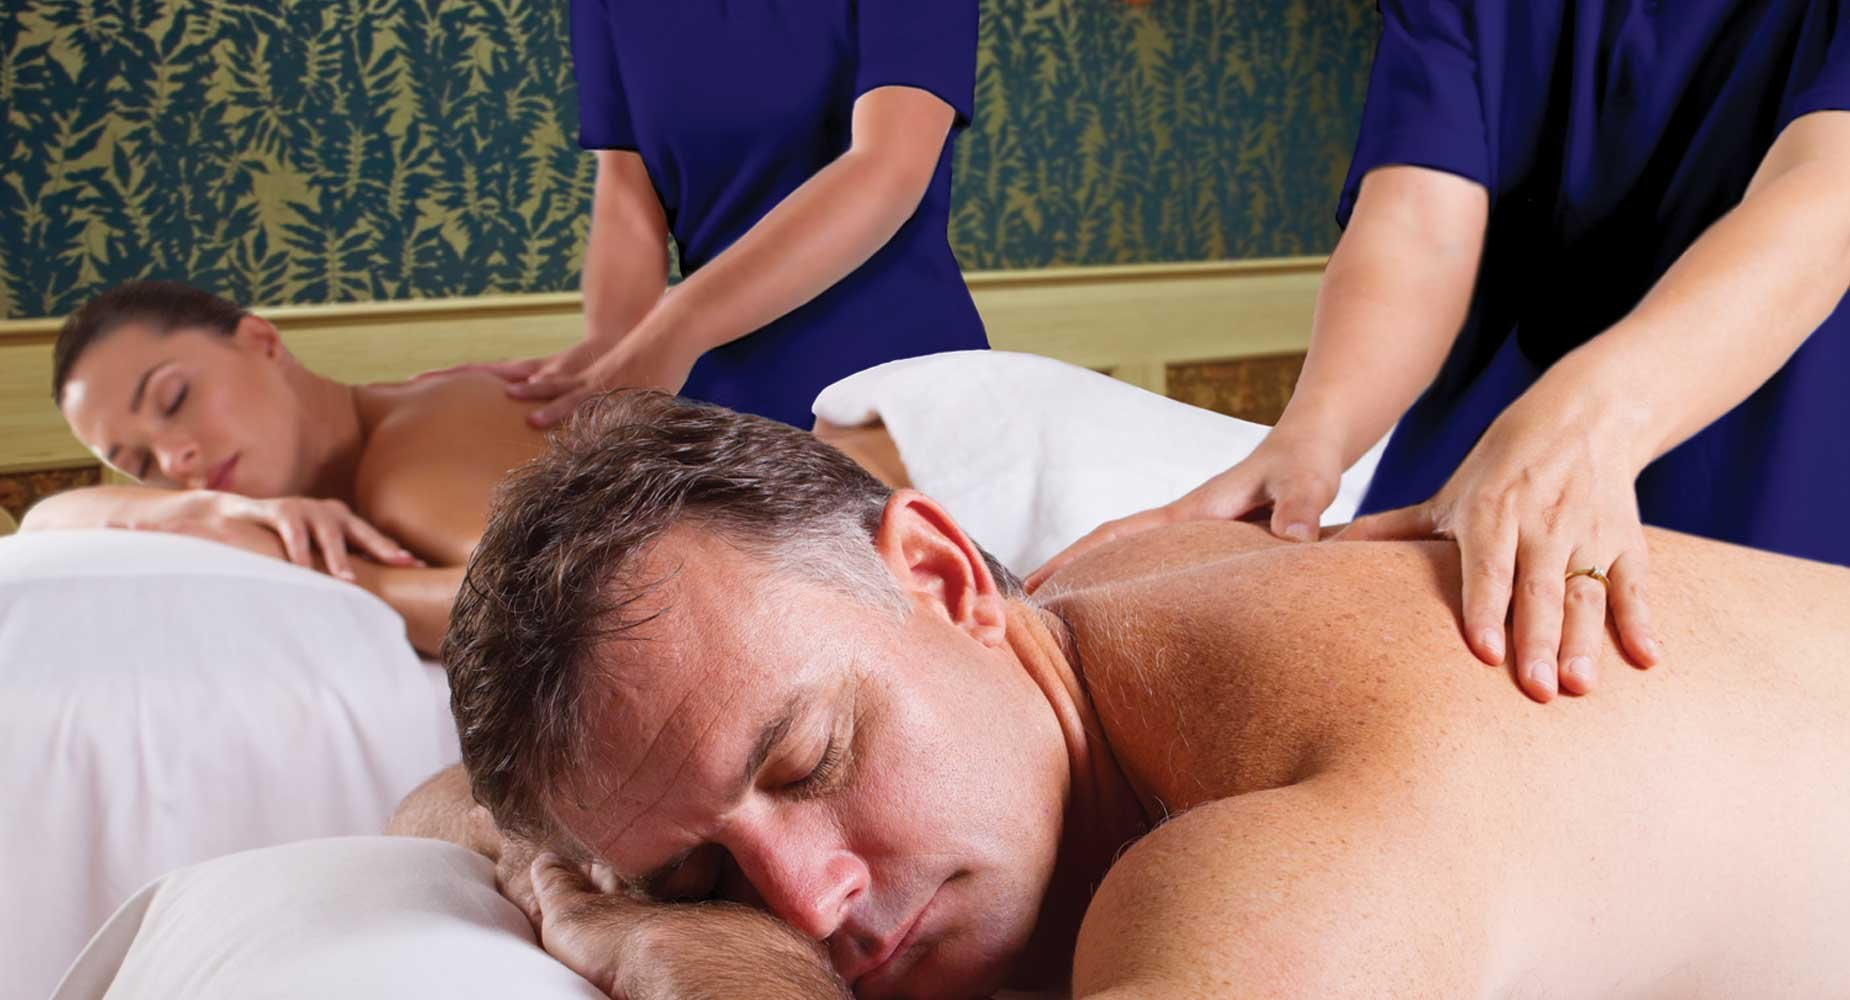 Schedule a couple's massage.The room is warmly decorated with teals and golds ... very inviting.